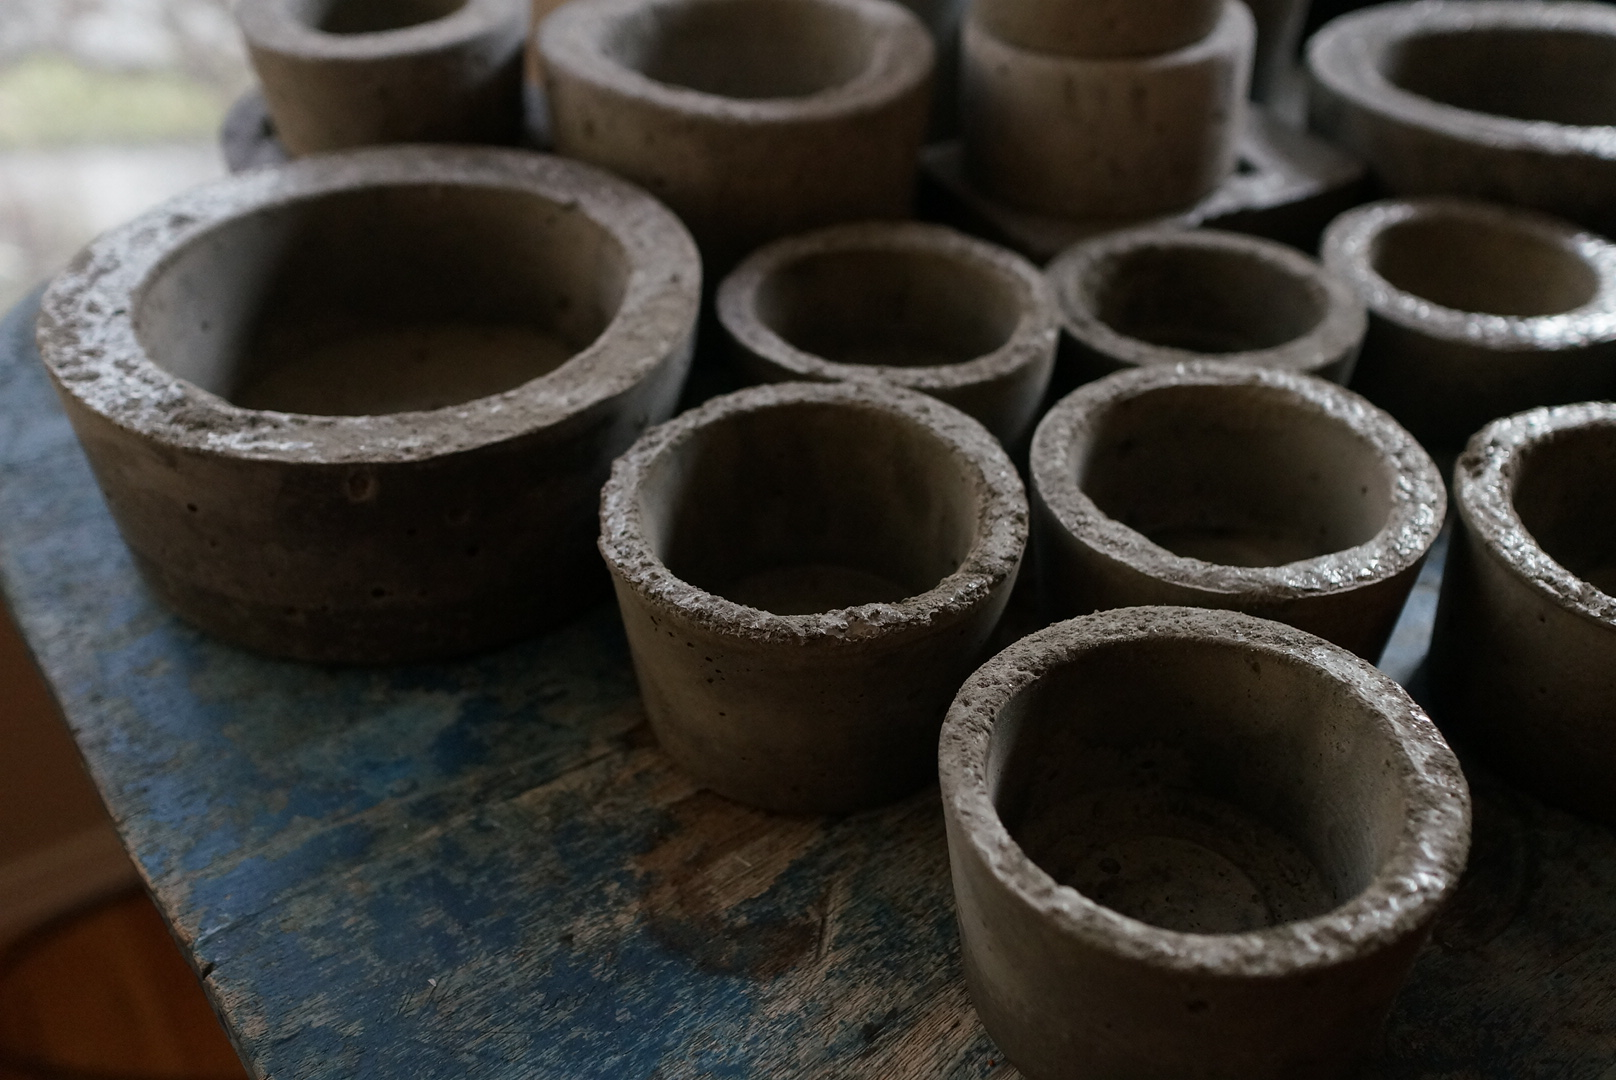 Concrete pots come out of their molds to dry.